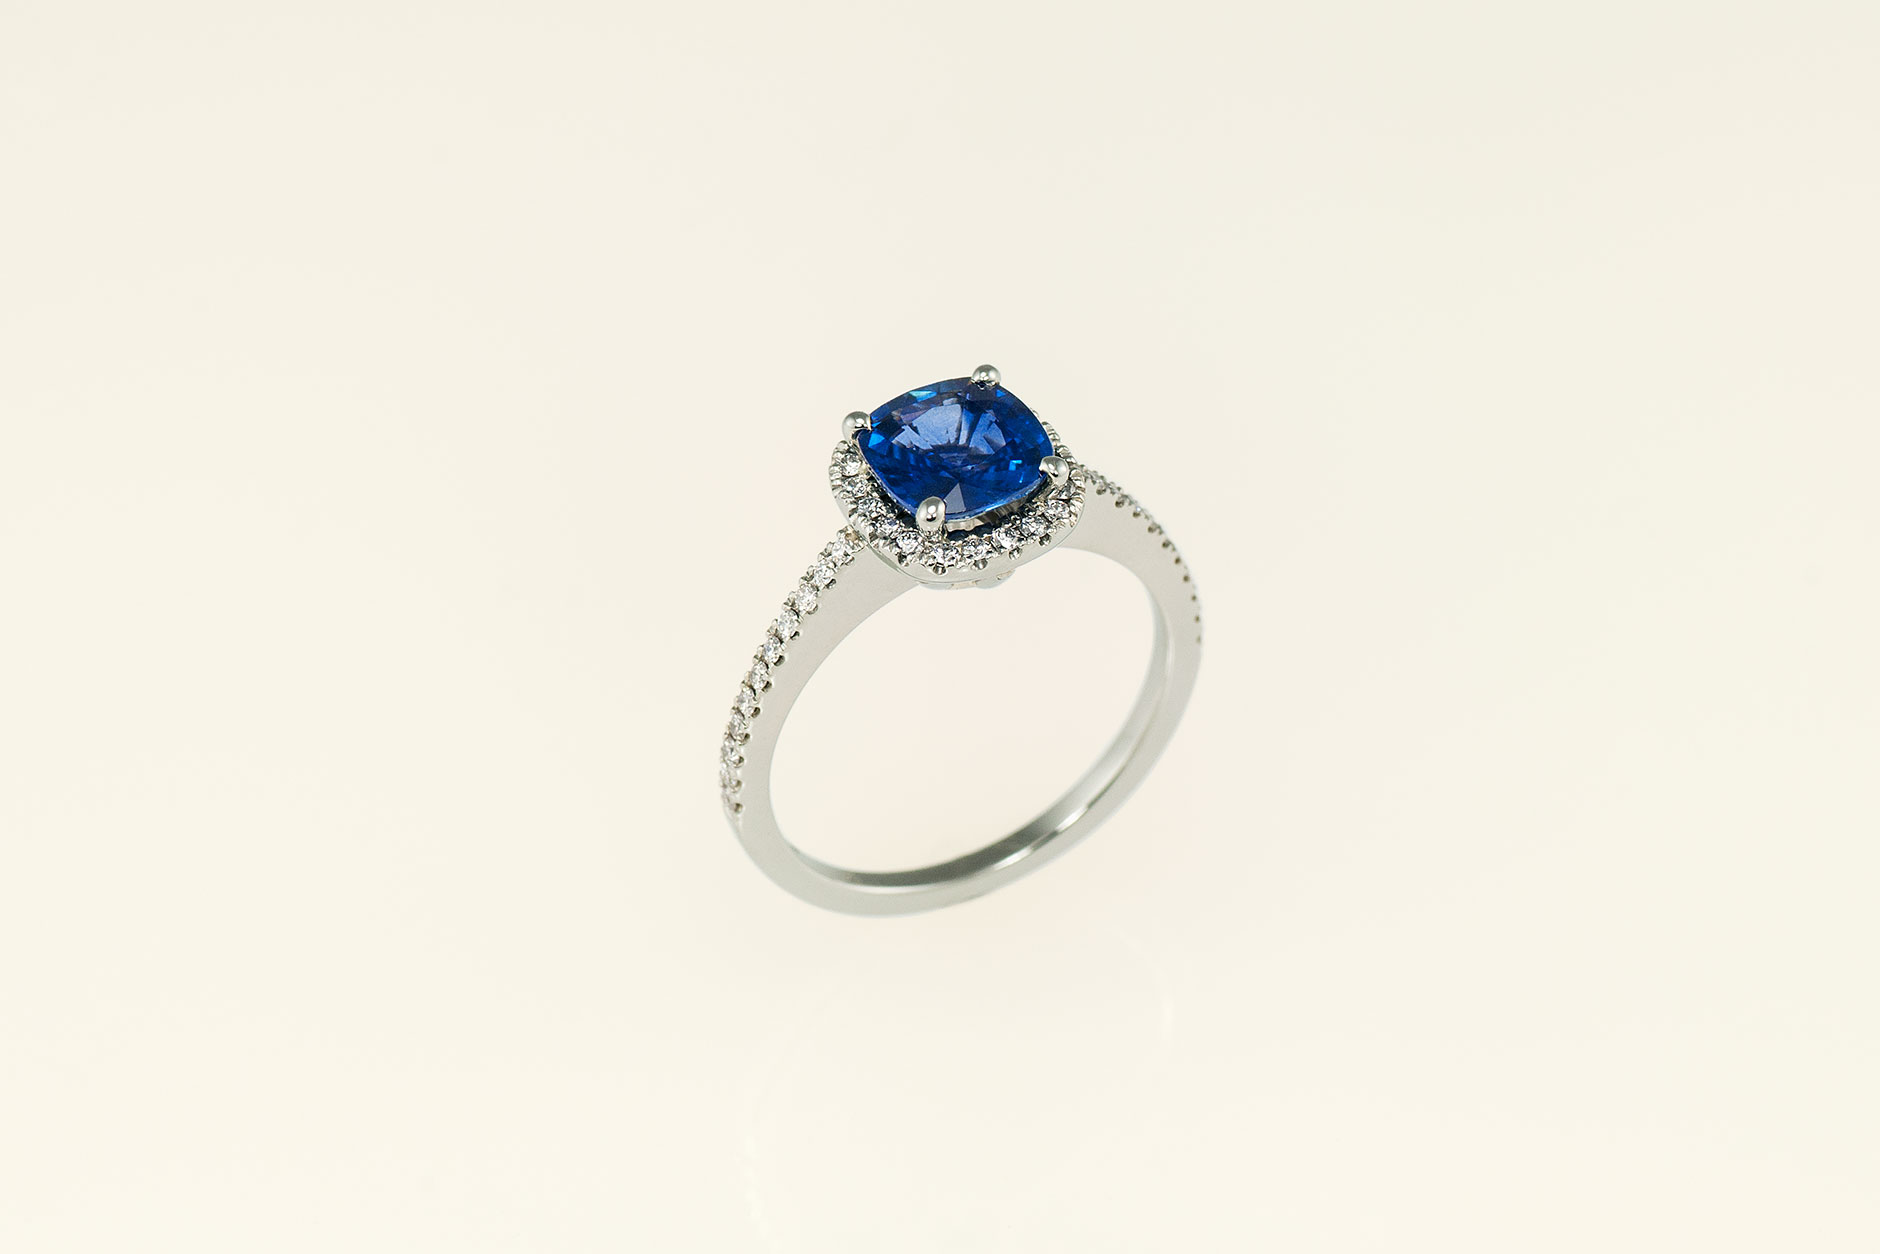 19k White Gold Cushion Cut Blue Sapphire Halo Engagement Ring standing - NEWA Goldsmith